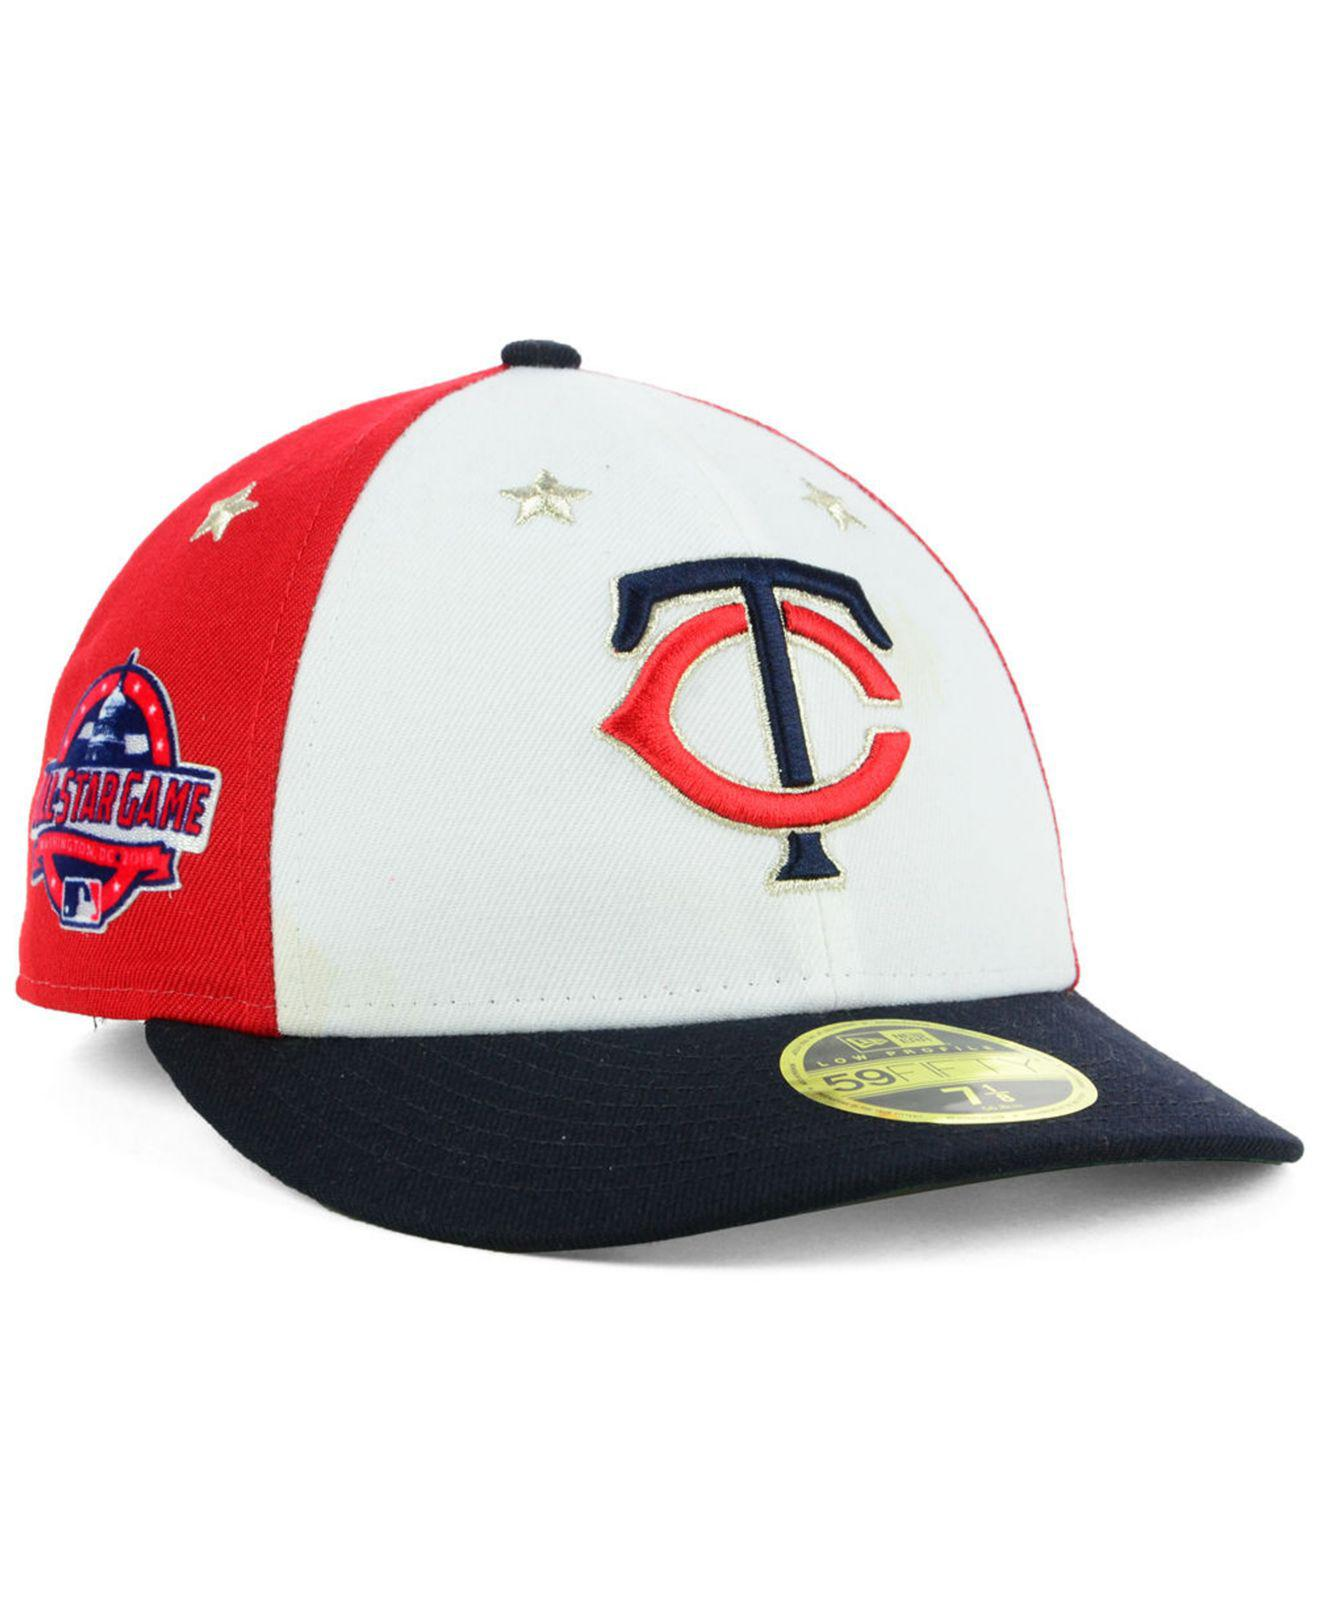 super popular c7bb1 bacc5 KTZ. Men s Minnesota Twins All Star Game Patch Low Profile 59fifty Fitted  Cap 2018